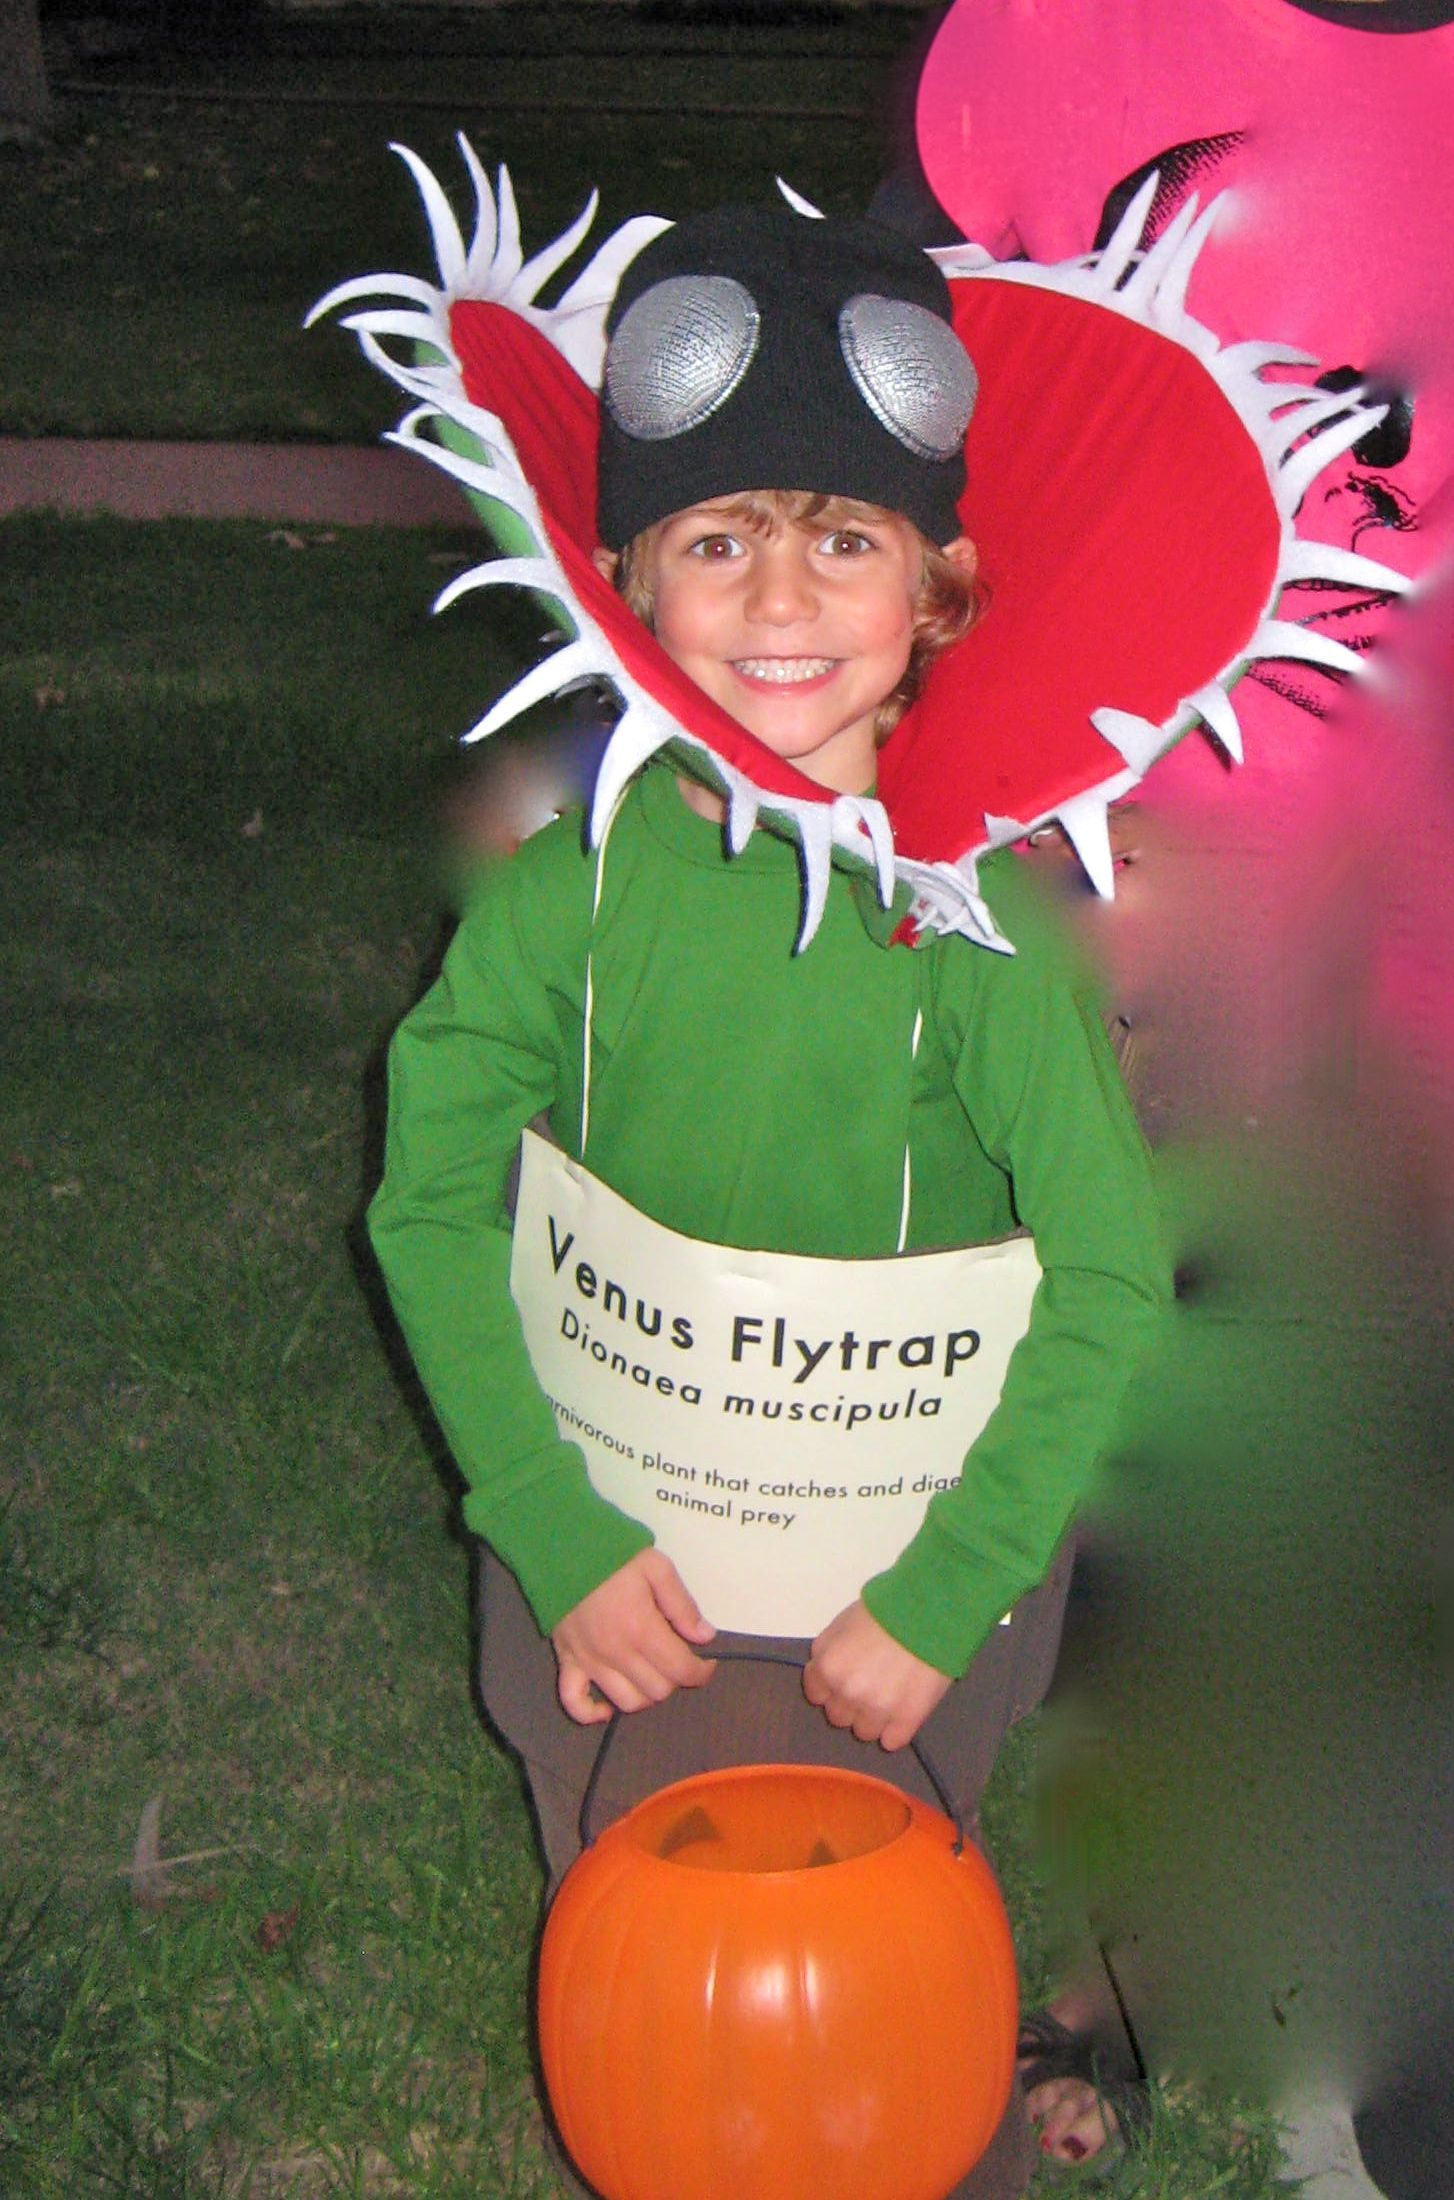 venus fly trap costume kids Google Search in 2020 Fly